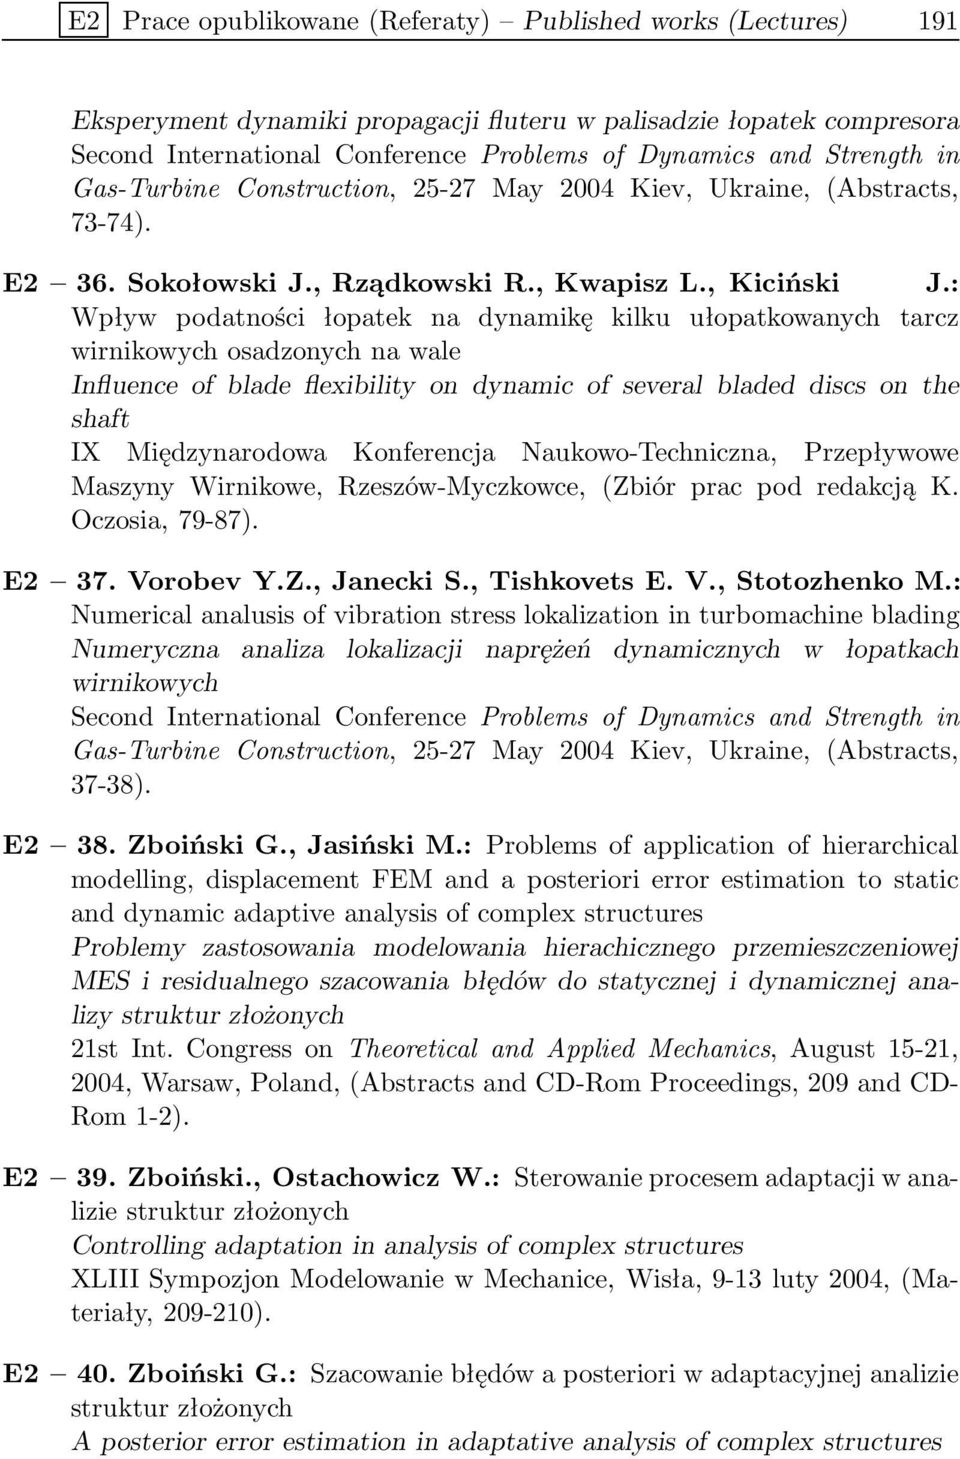 : Wpływ podatności łopatek na dynamikę kilku ułopatkowanych tarcz wirnikowych osadzonych na wale Influence of blade flexibility on dynamic of several bladed discs on the shaft IX Międzynarodowa